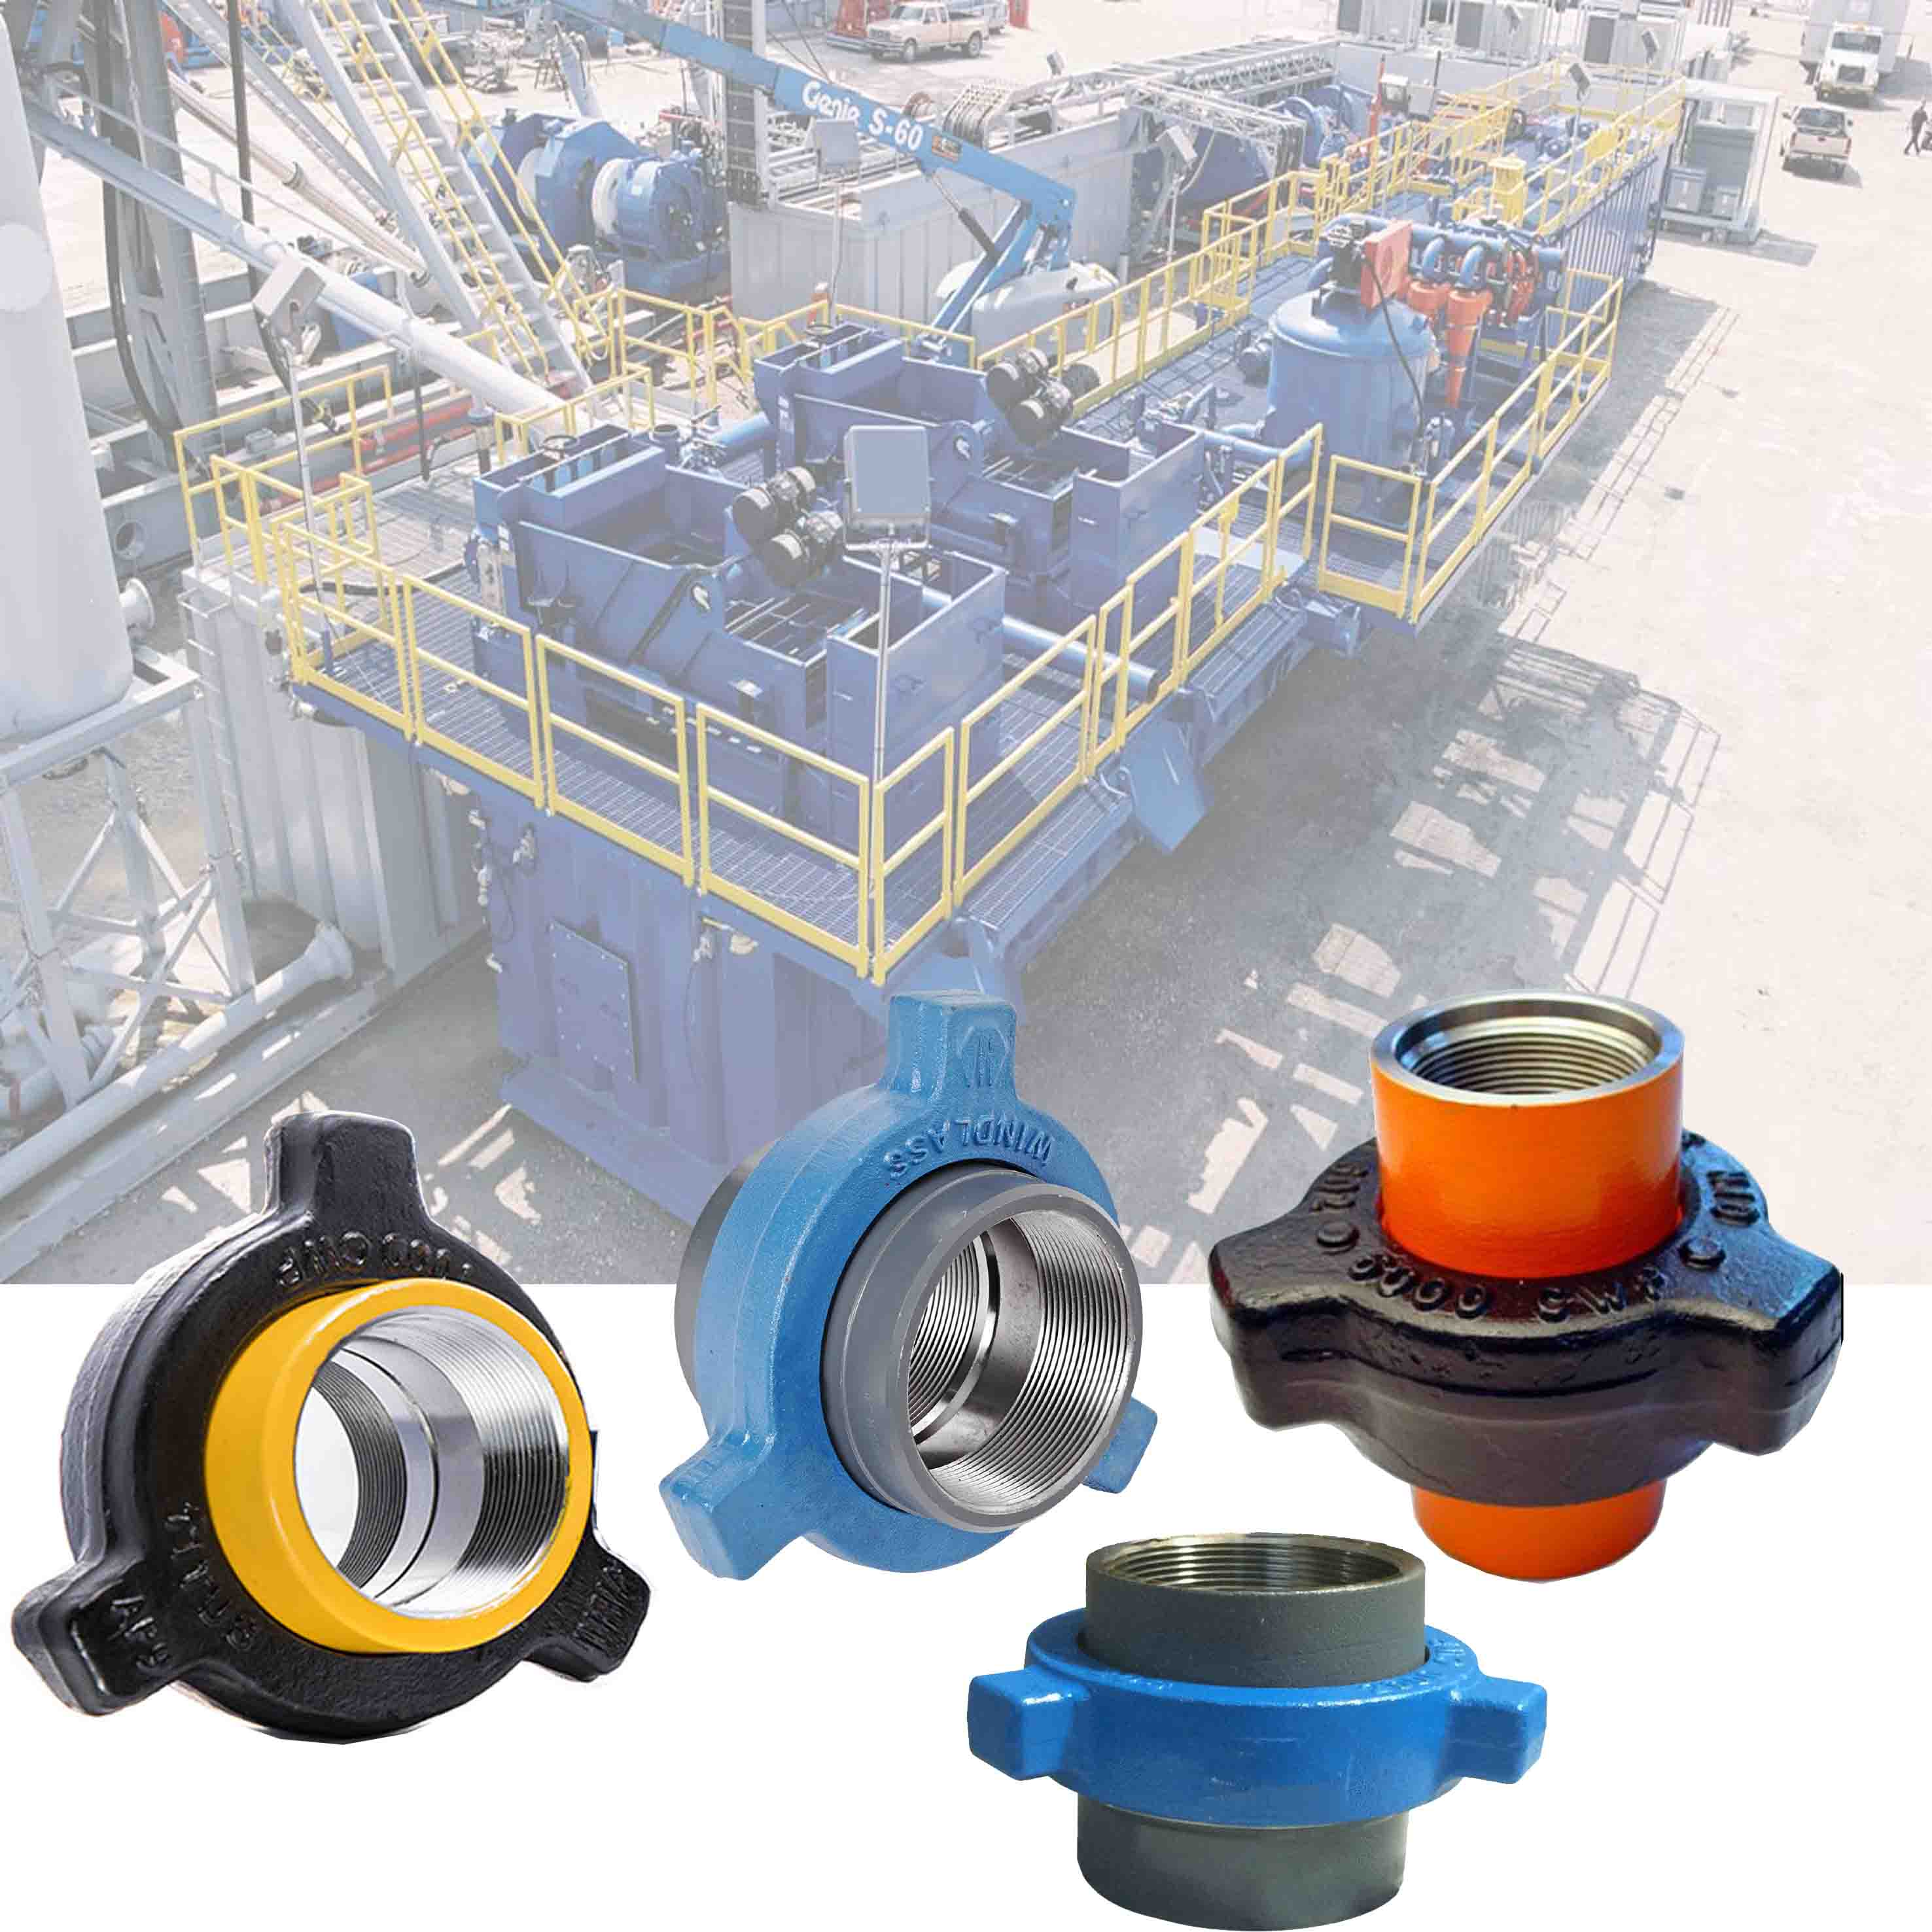 SX09 - HOSE COUPLINGS - BAT Industrial Products